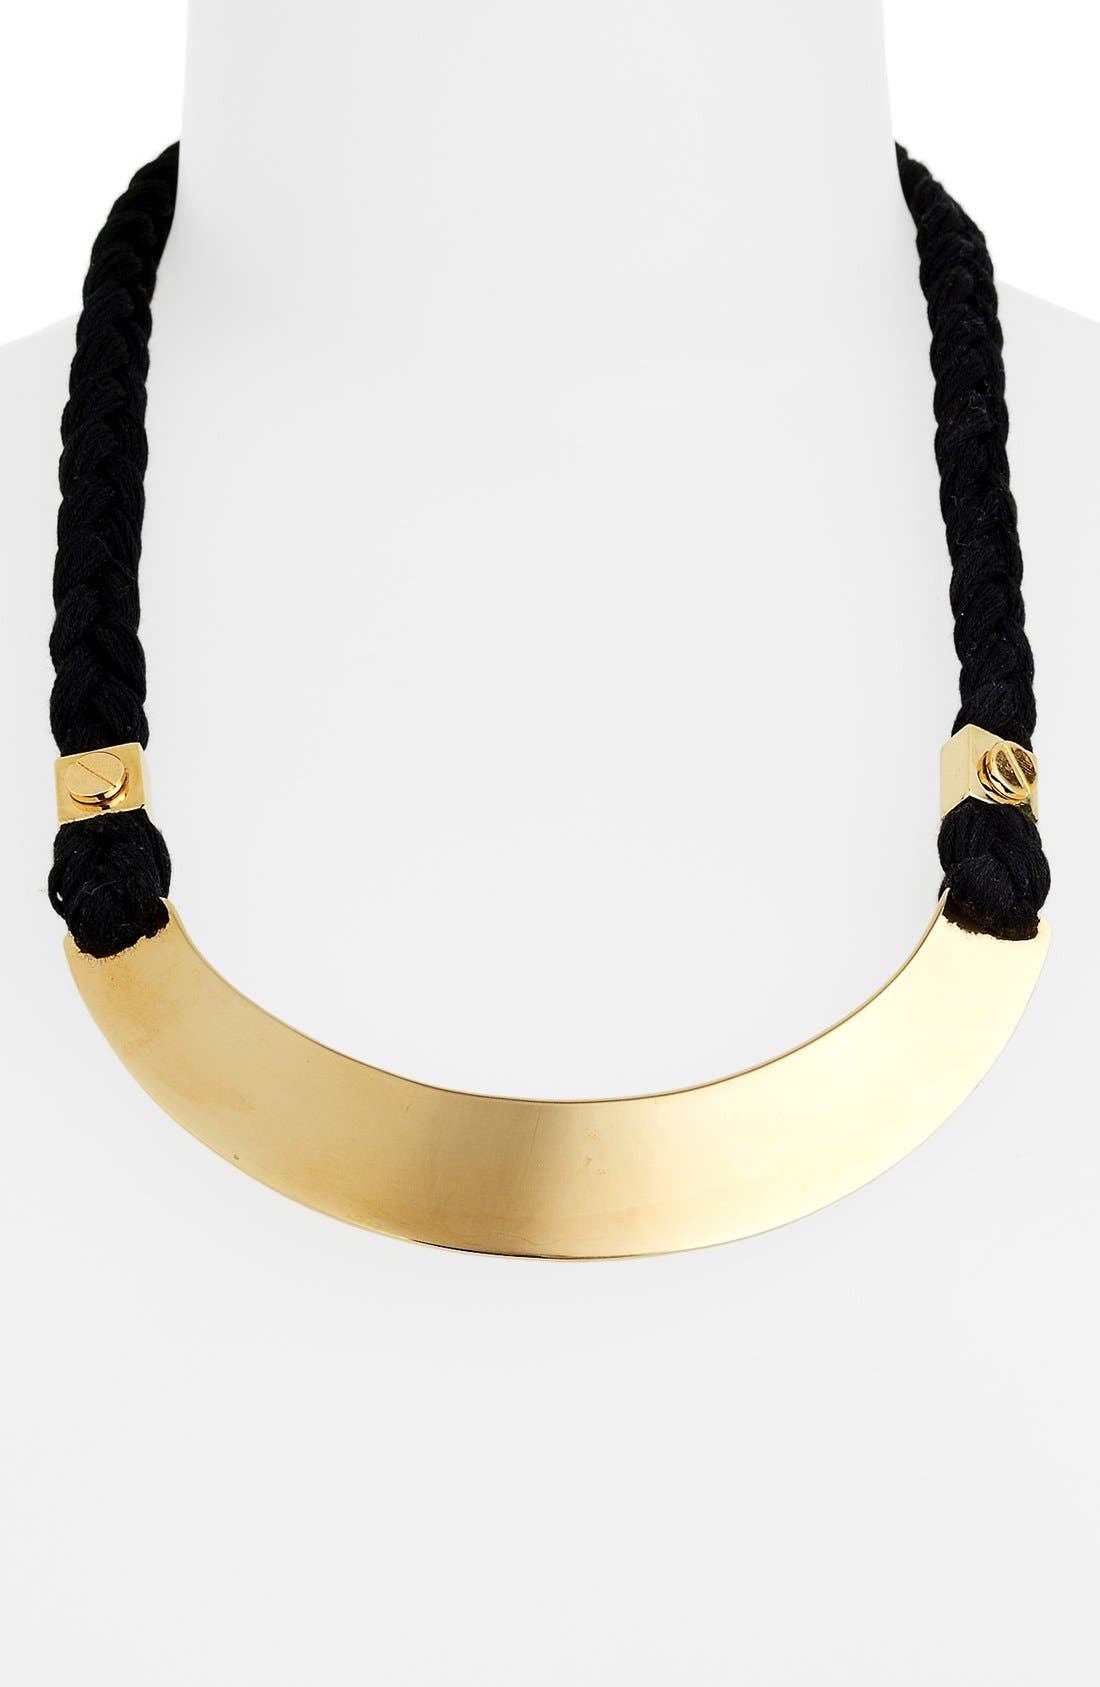 Alternate Image 1 Selected - Tory Burch Bib Necklace